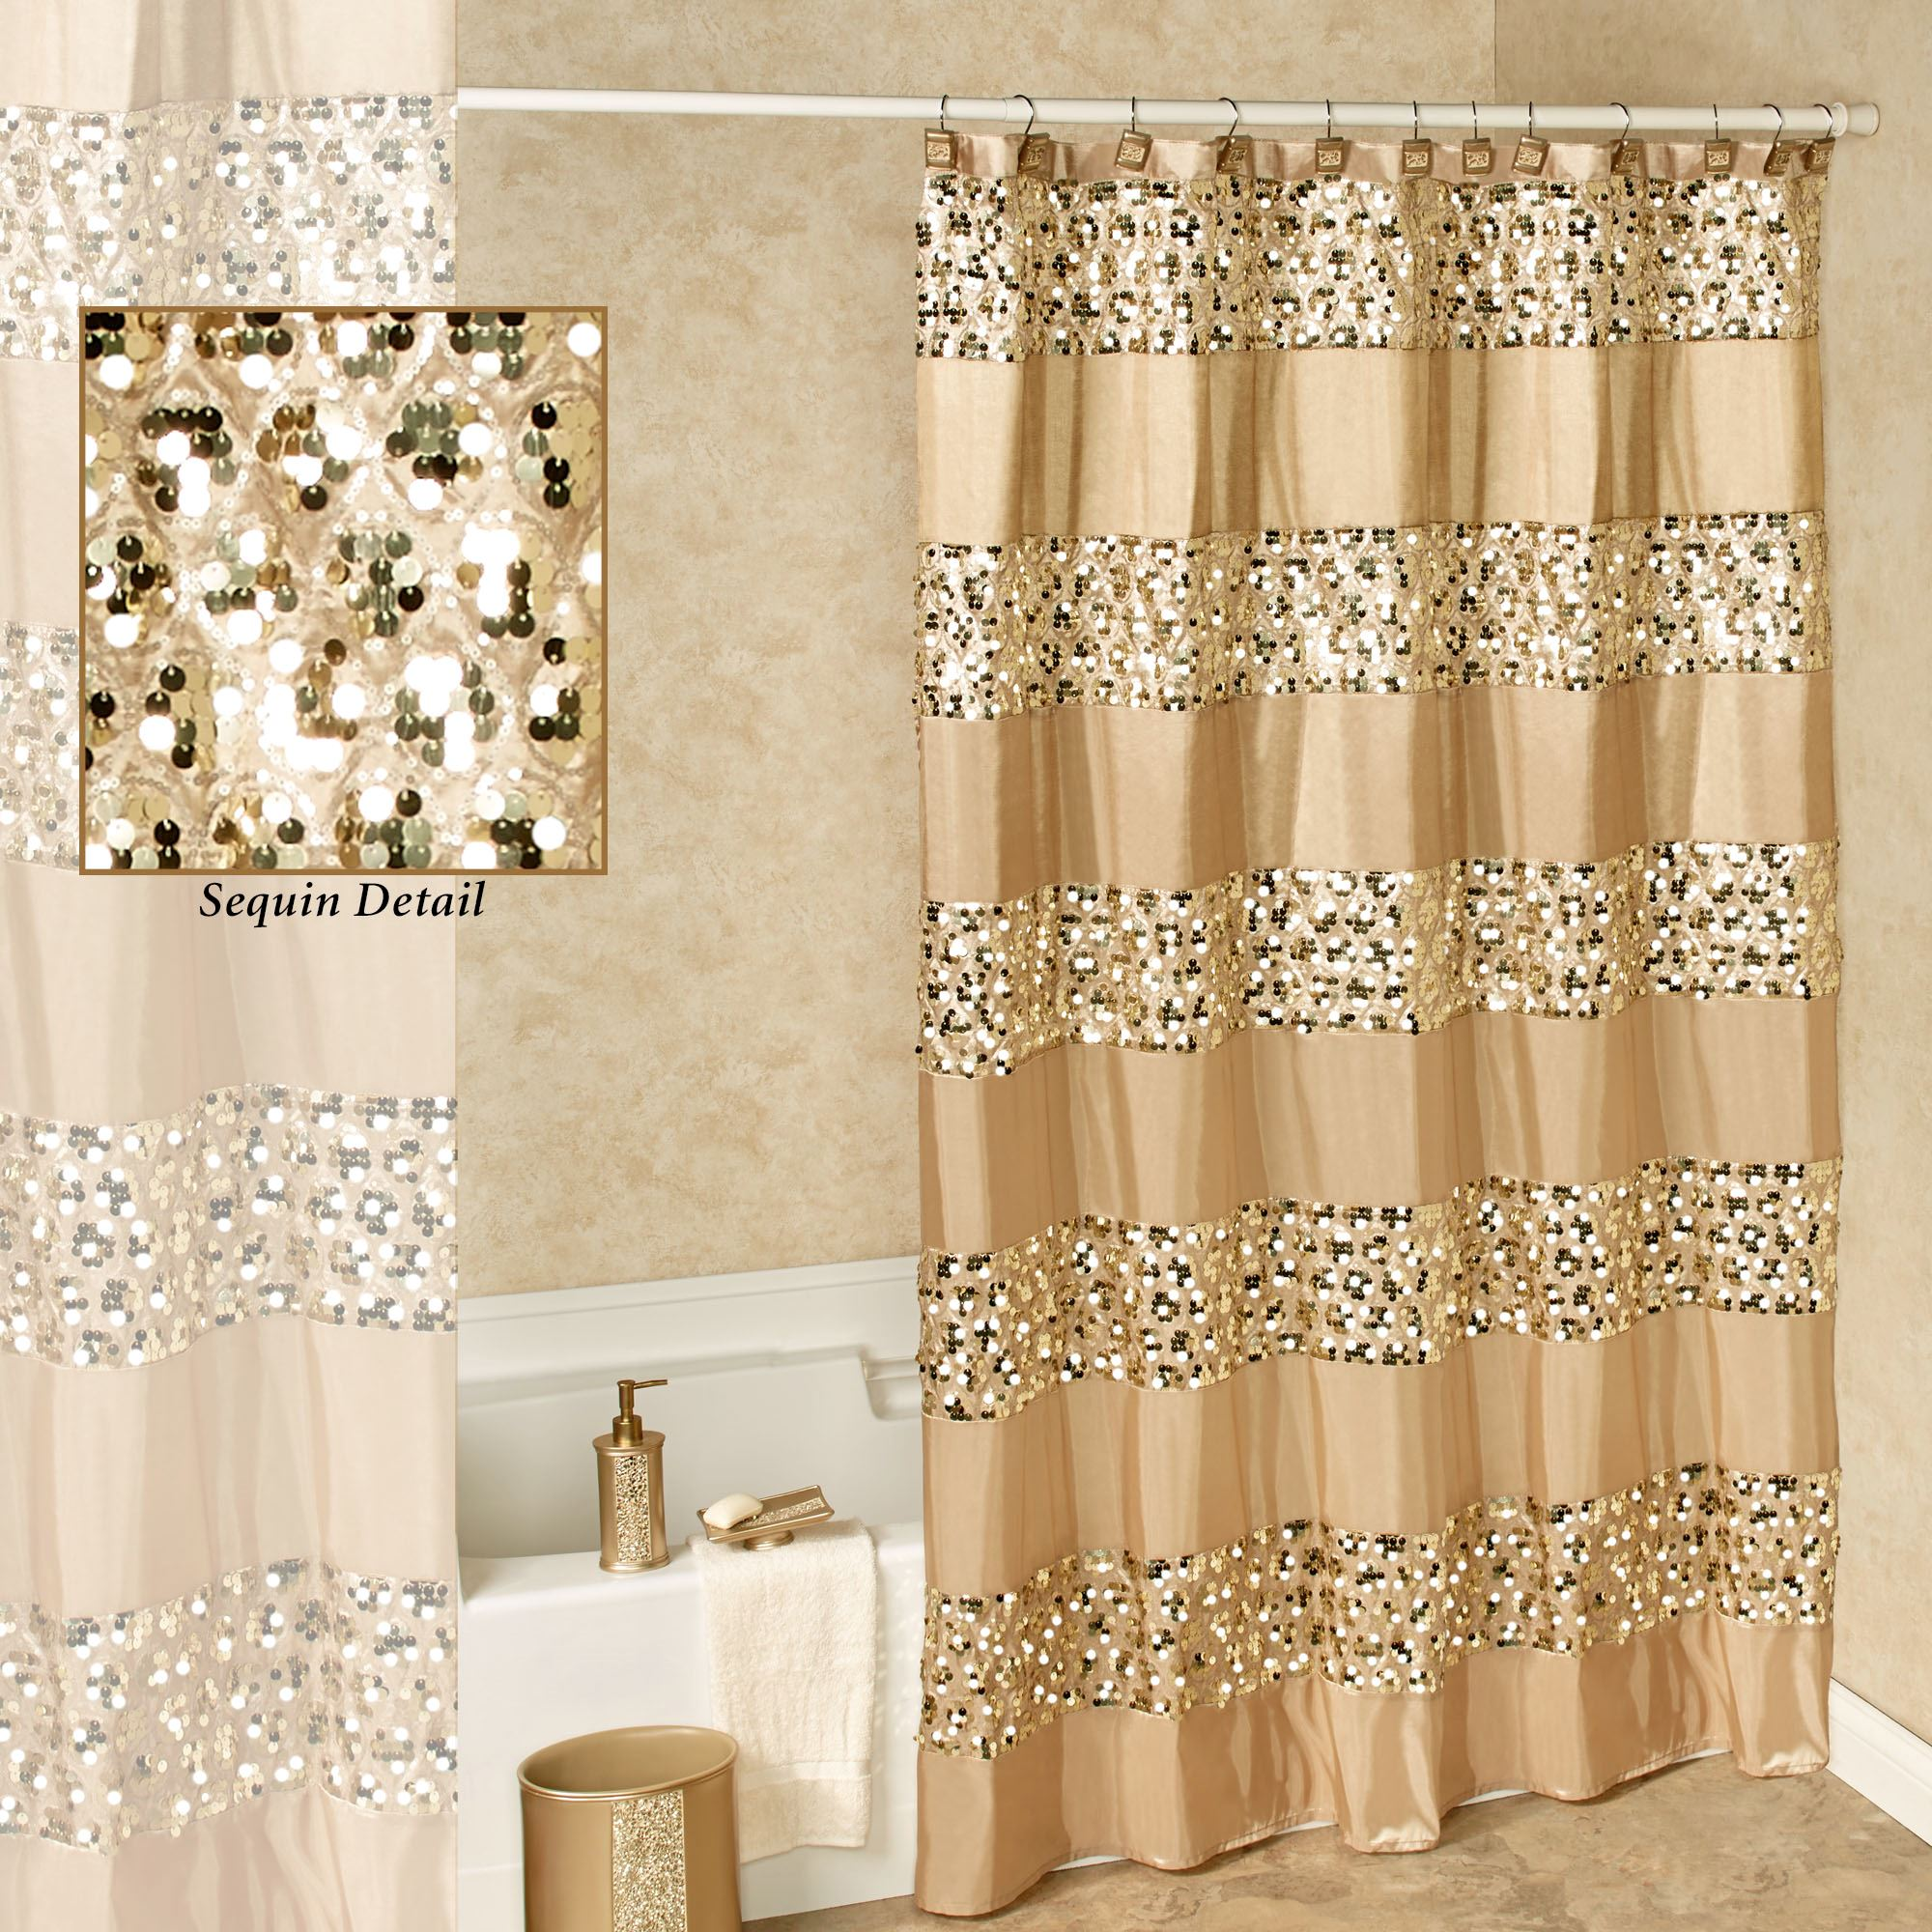 Prestigue Shower Curtain Champagne Gold 70 X 72 Touch To Zoom